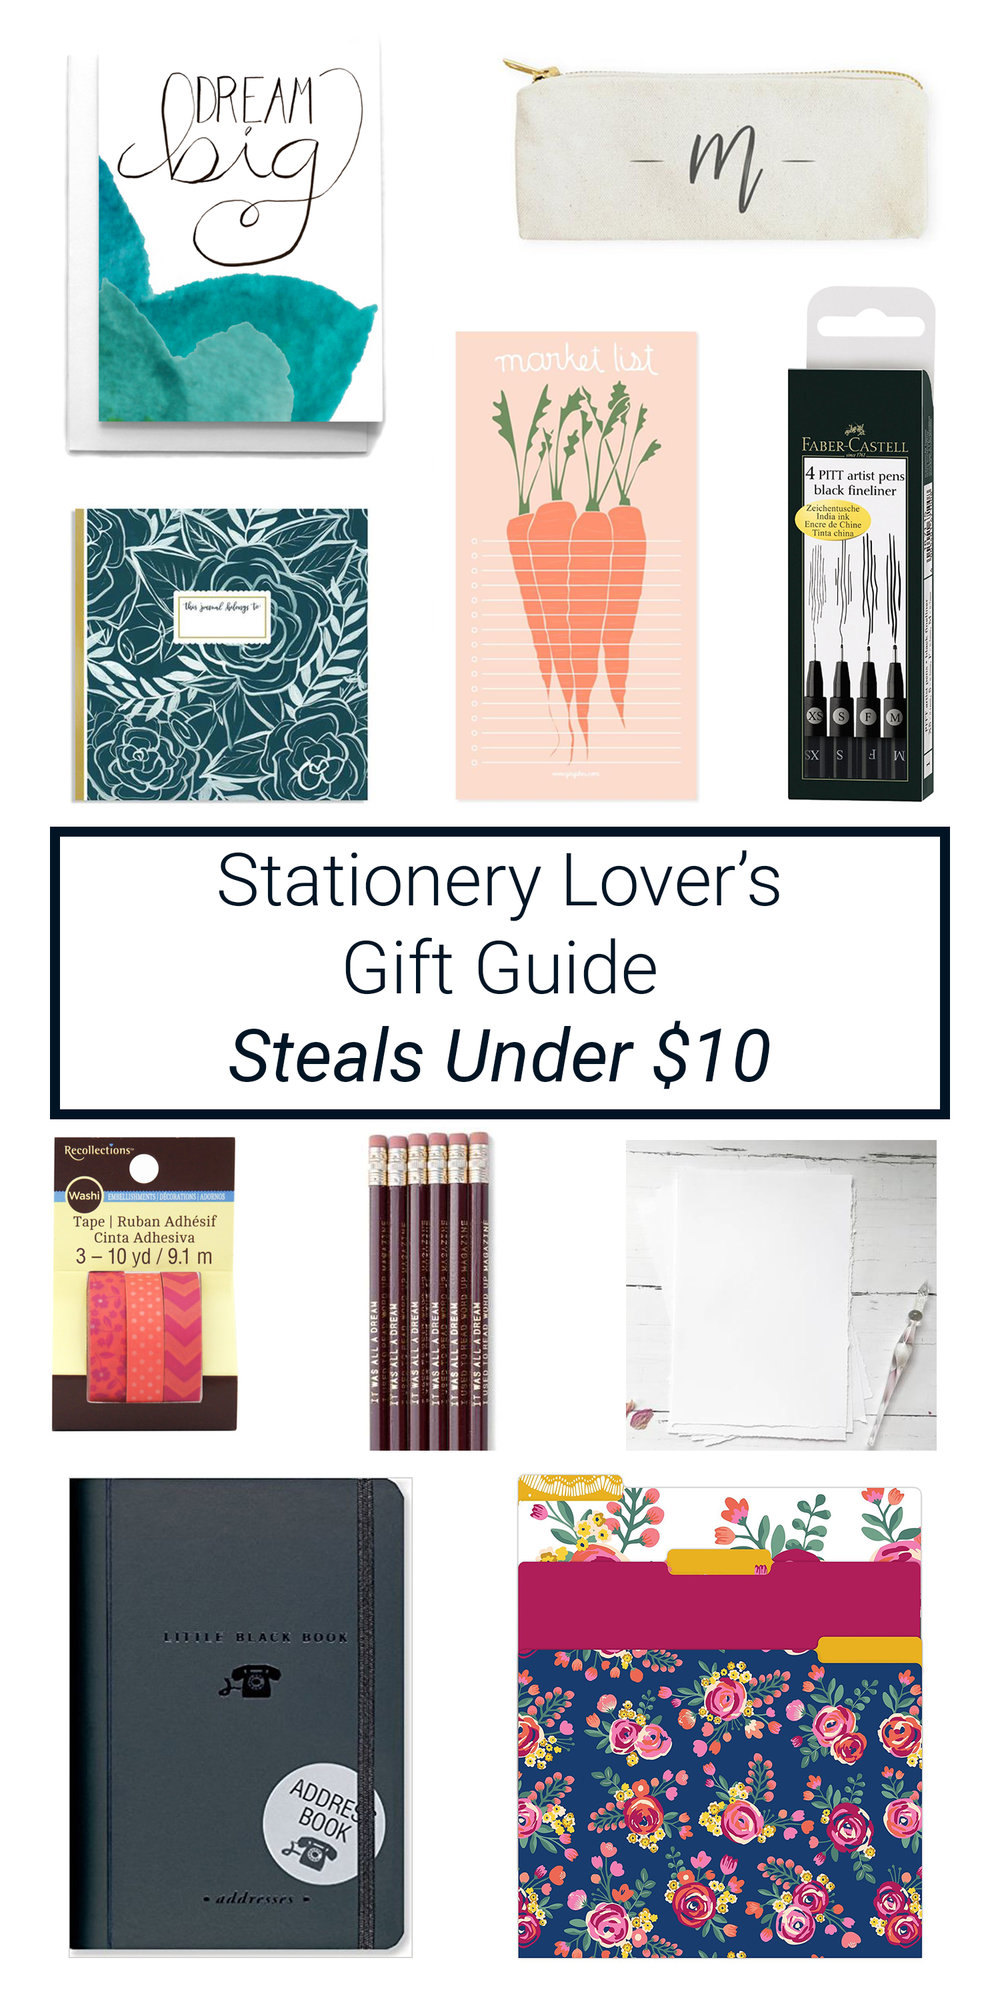 Pin this gift guide for later!